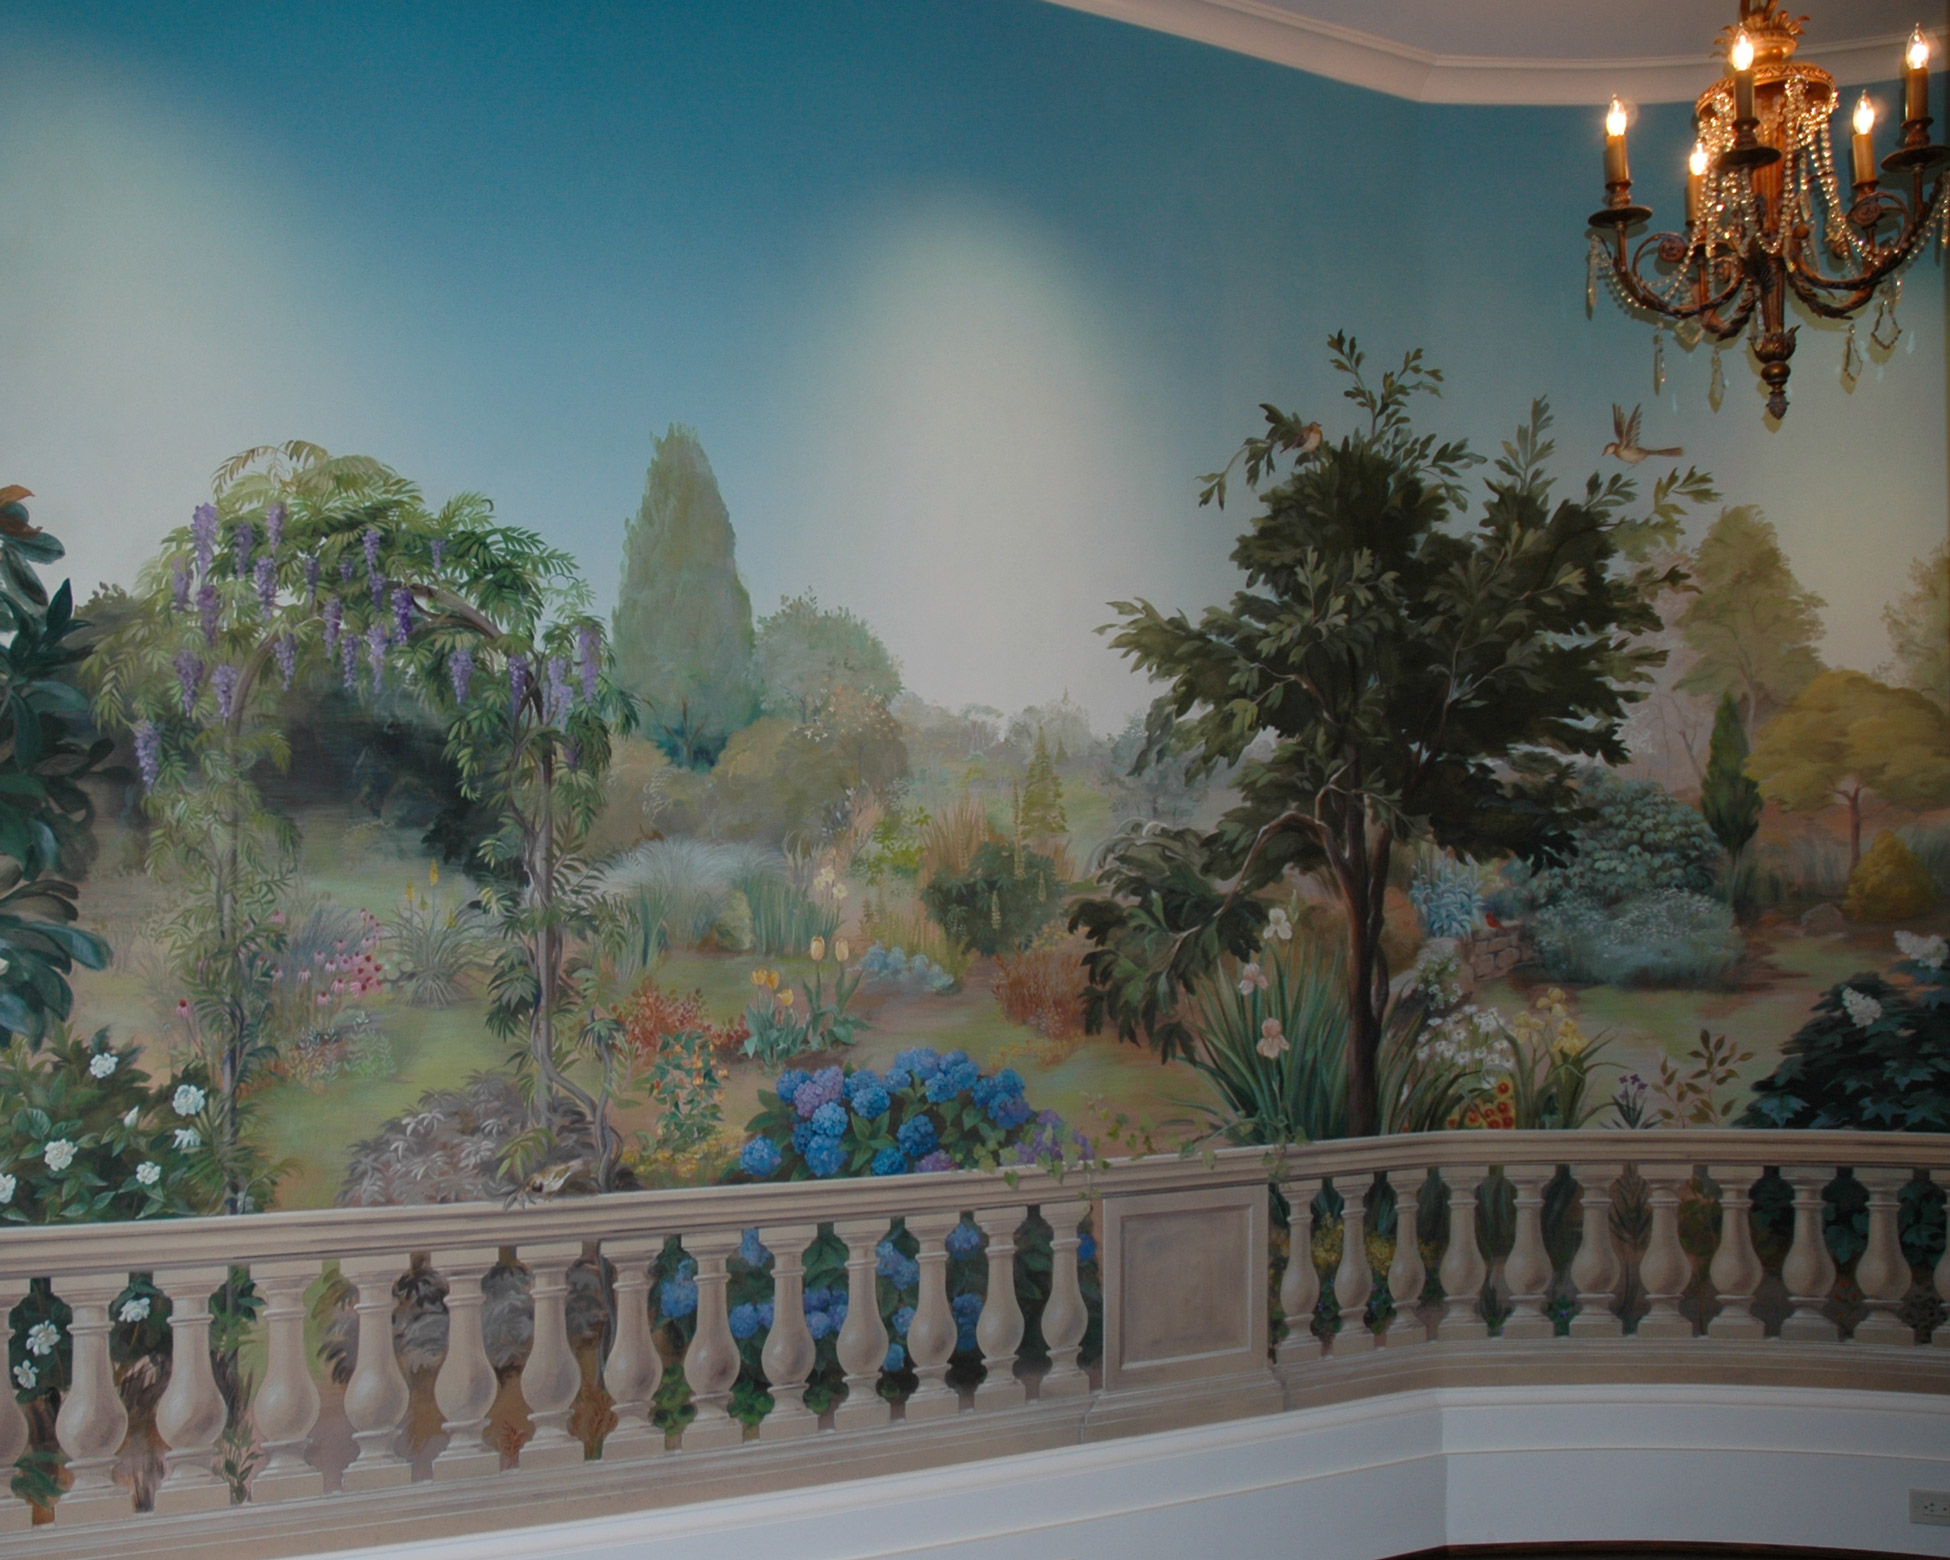 Garden mural painted on interior wall by Jill Biskin